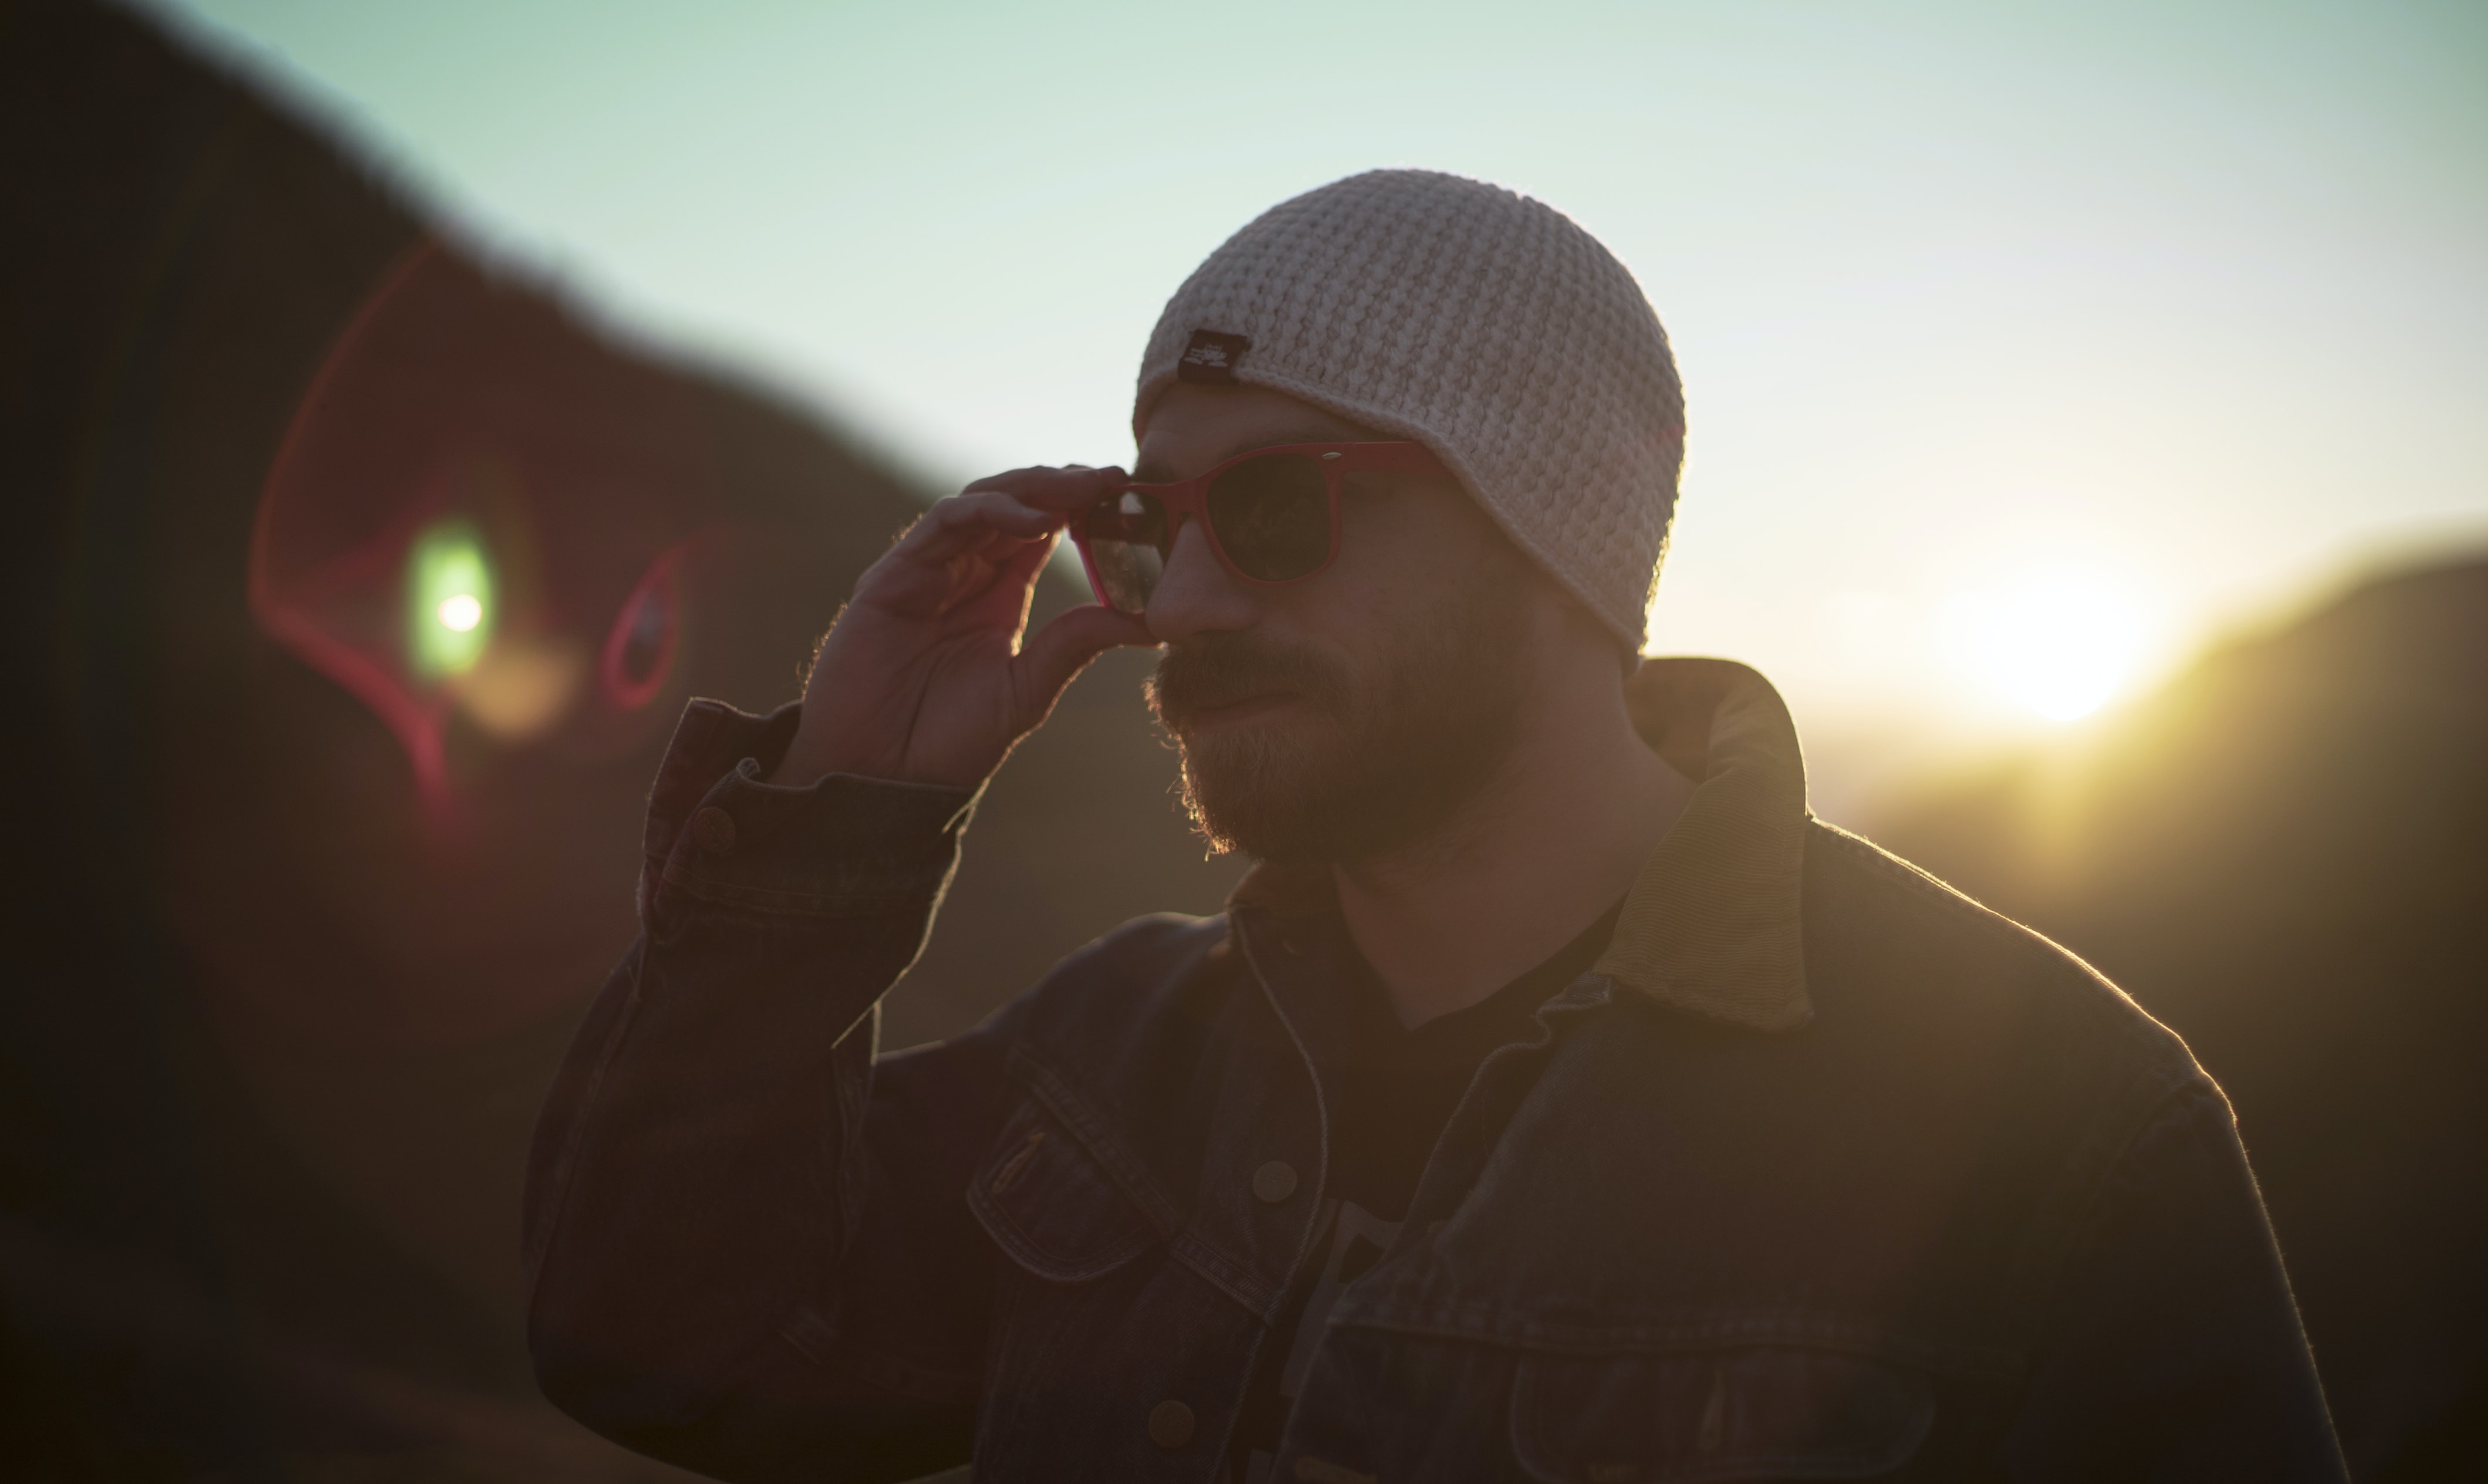 Man with a beard and beanie adjusts sunglasses at dusk